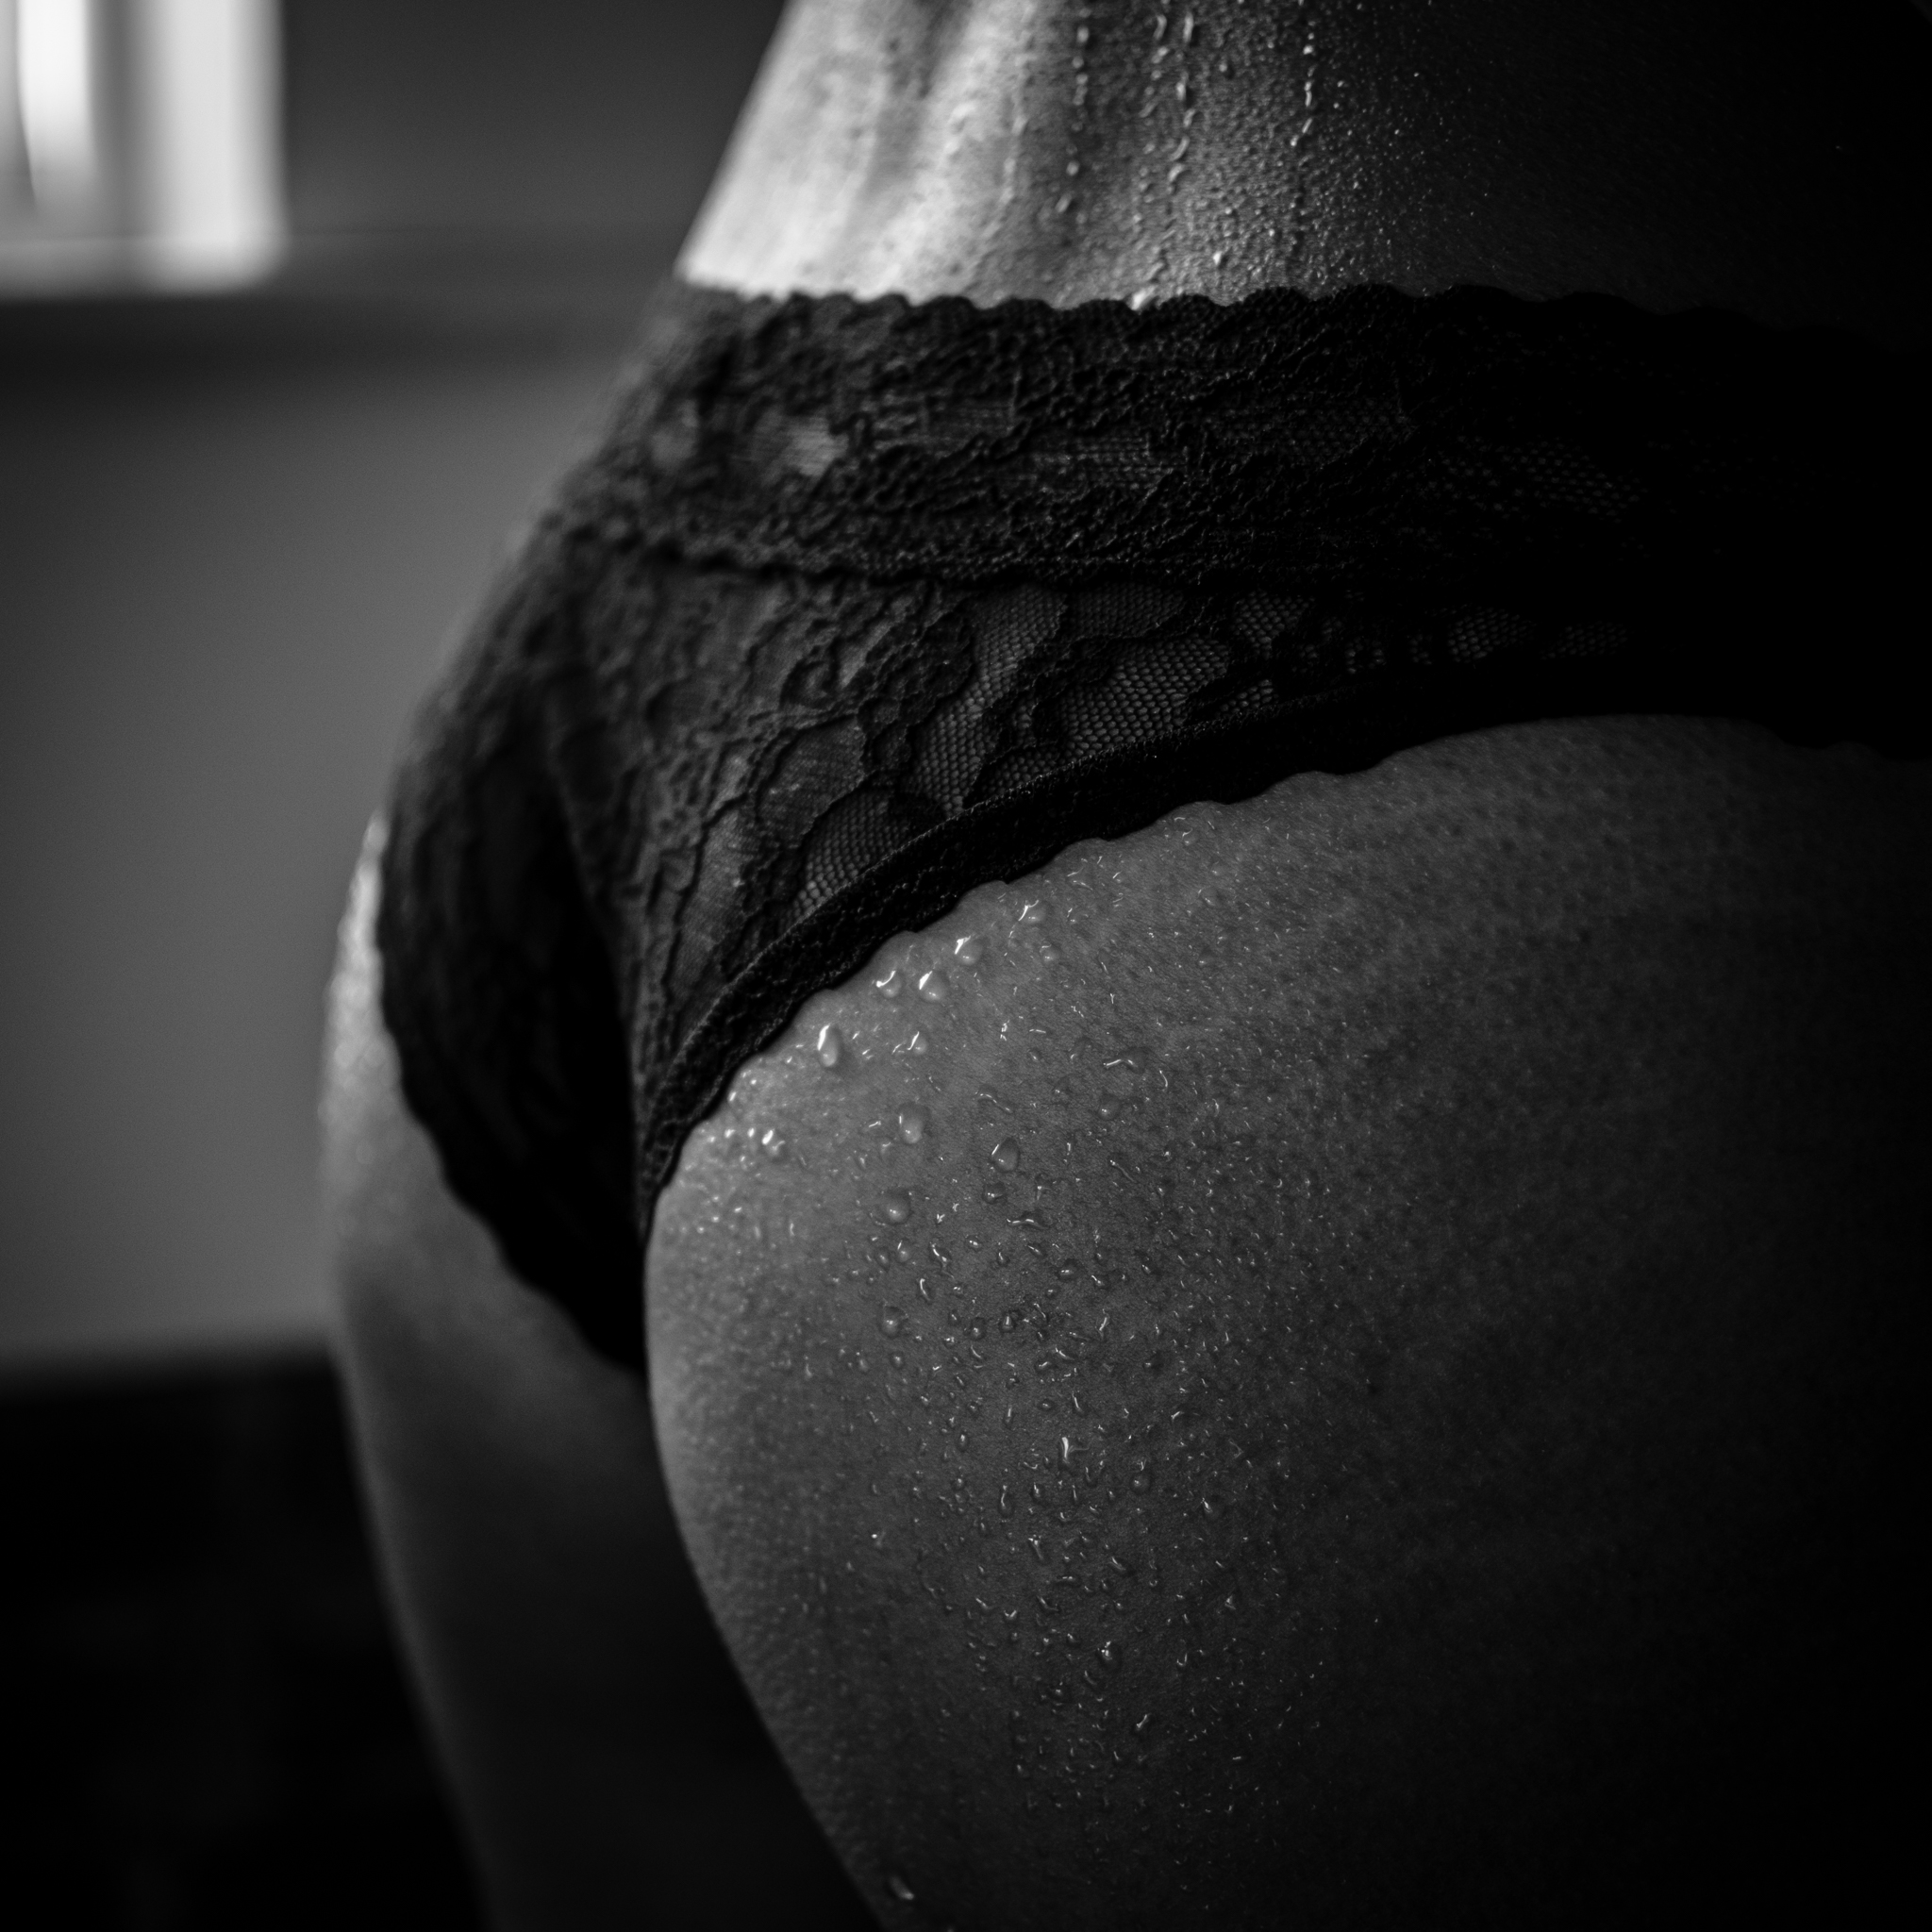 best NC boudoir photographer black and white portrait of butt tushietuesday by Amandamarie Gillen Photography Wilmington NC photographer standing wet pose showing water drops on skin by window with natural light